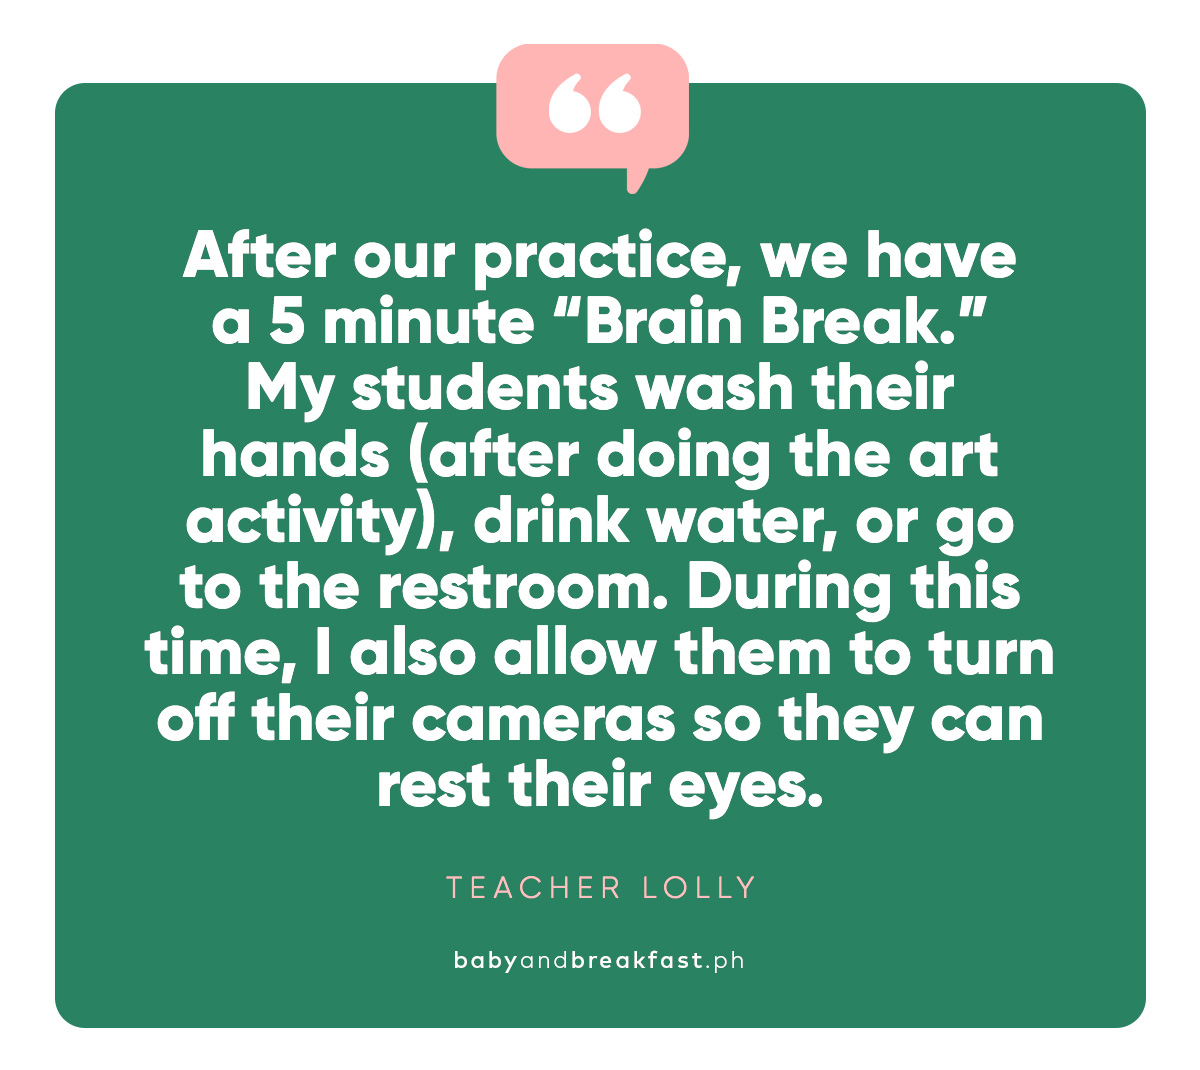 """After our practice, we have a 5 minute ""Brain Break."" My students wash their hands (after doing the art activity), drink water, or go to the restroom. During this time, I also allow them to turn off their cameras so they can rest their eyes.""-Teacher Lolly"